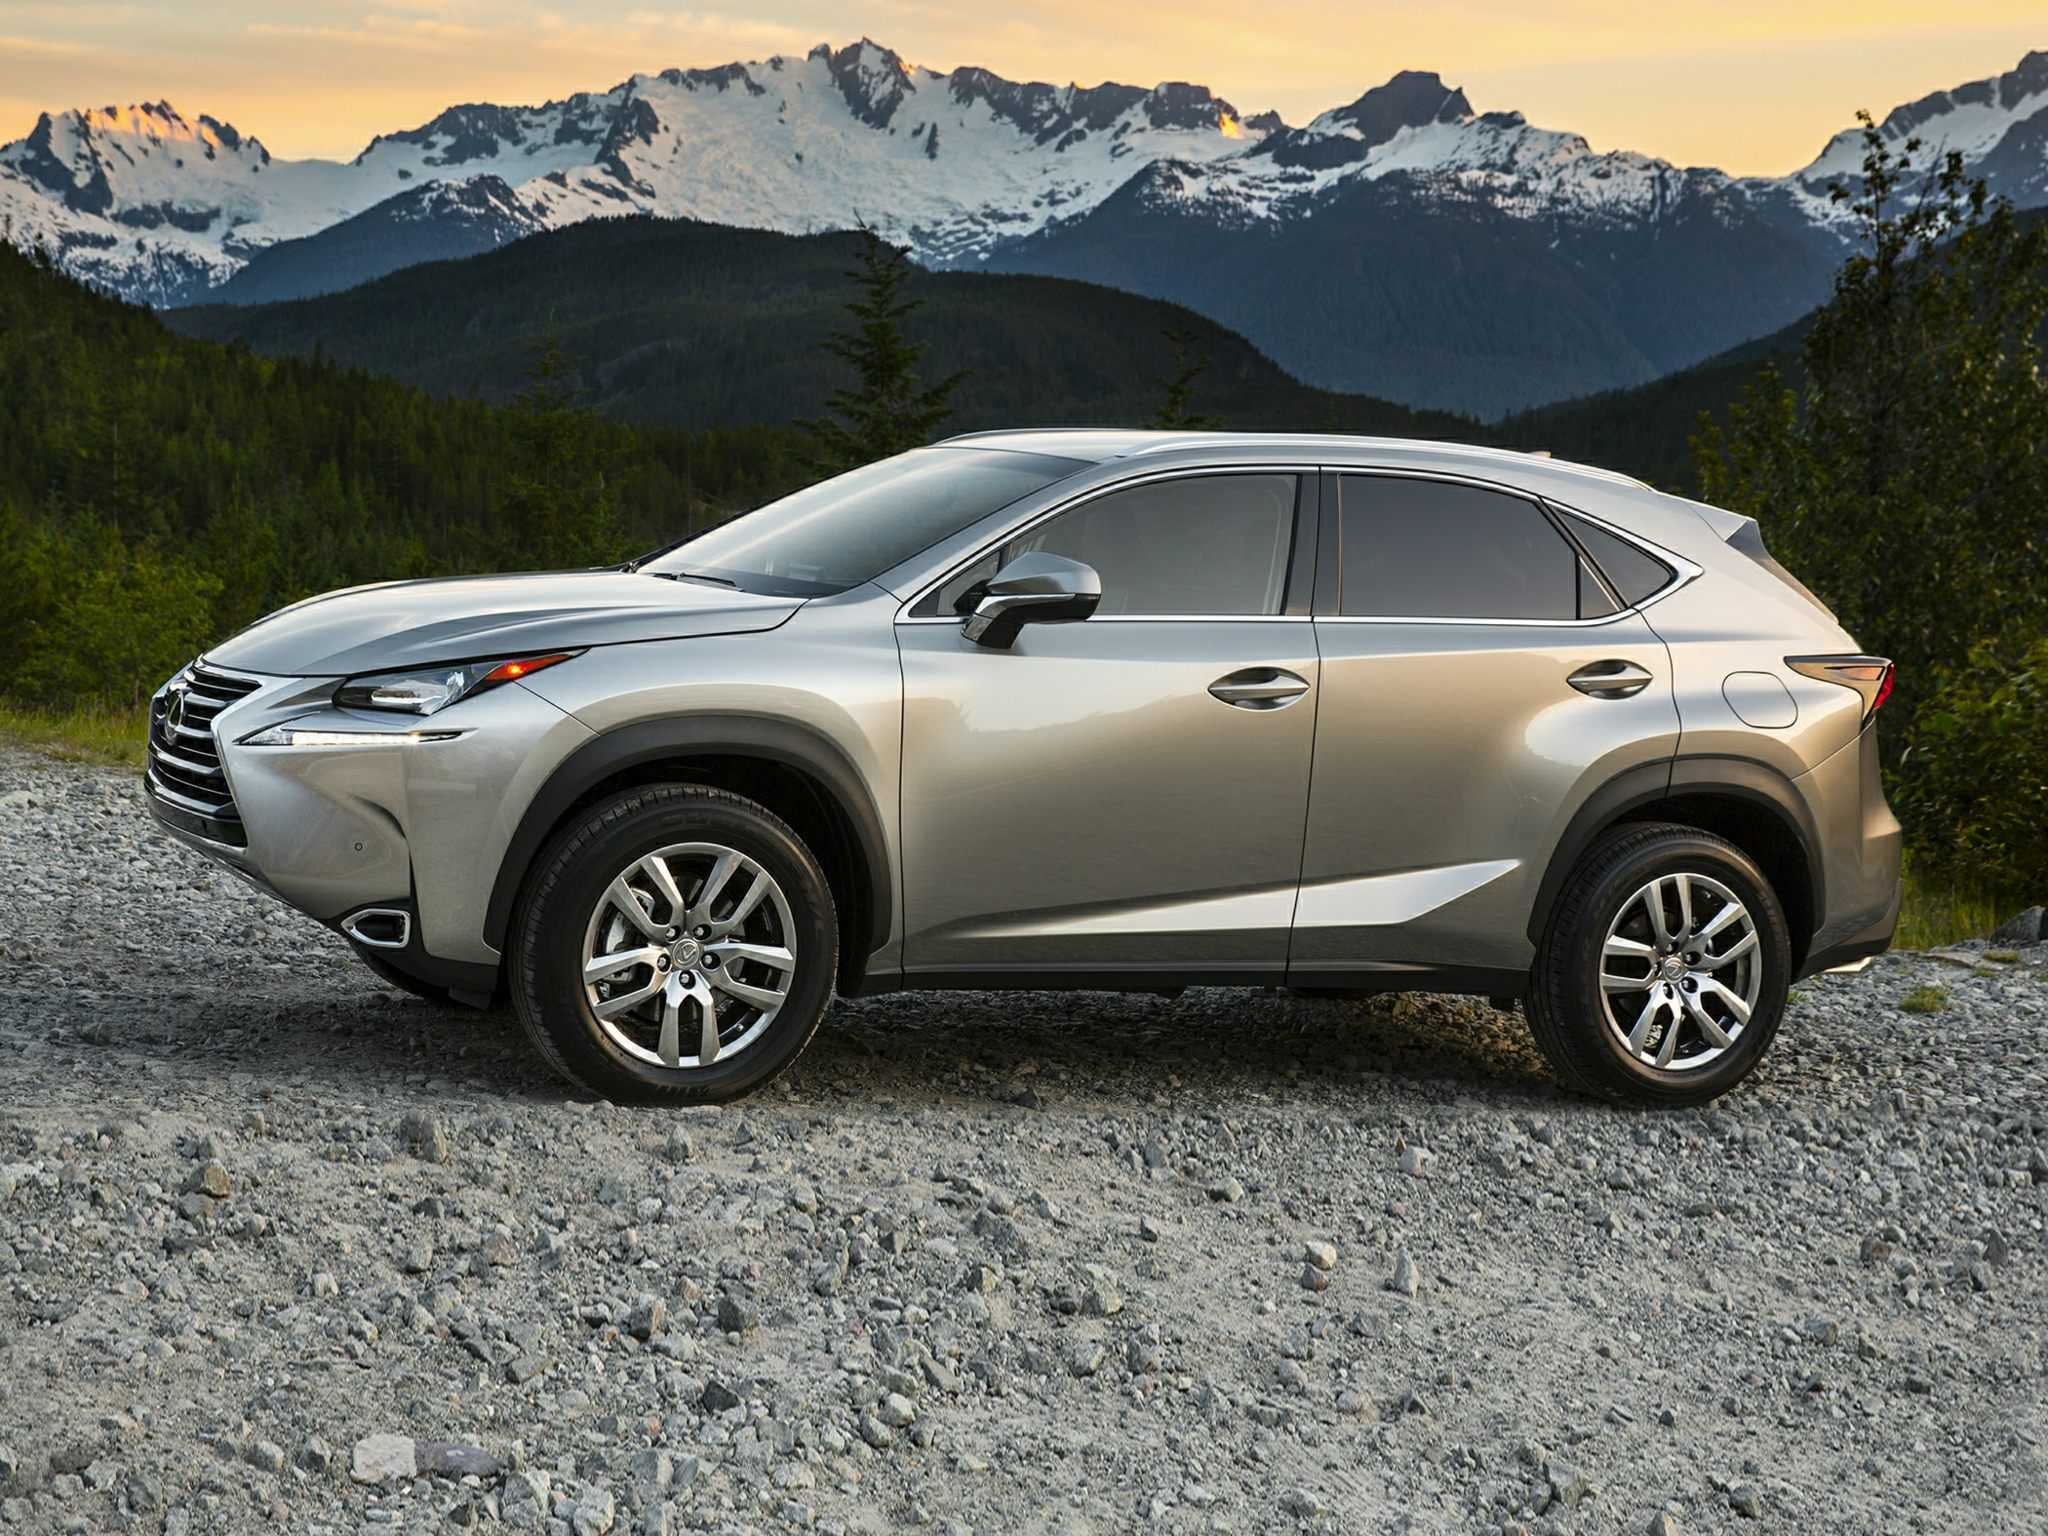 63 All New 2019 Lexus NX 200t Concept